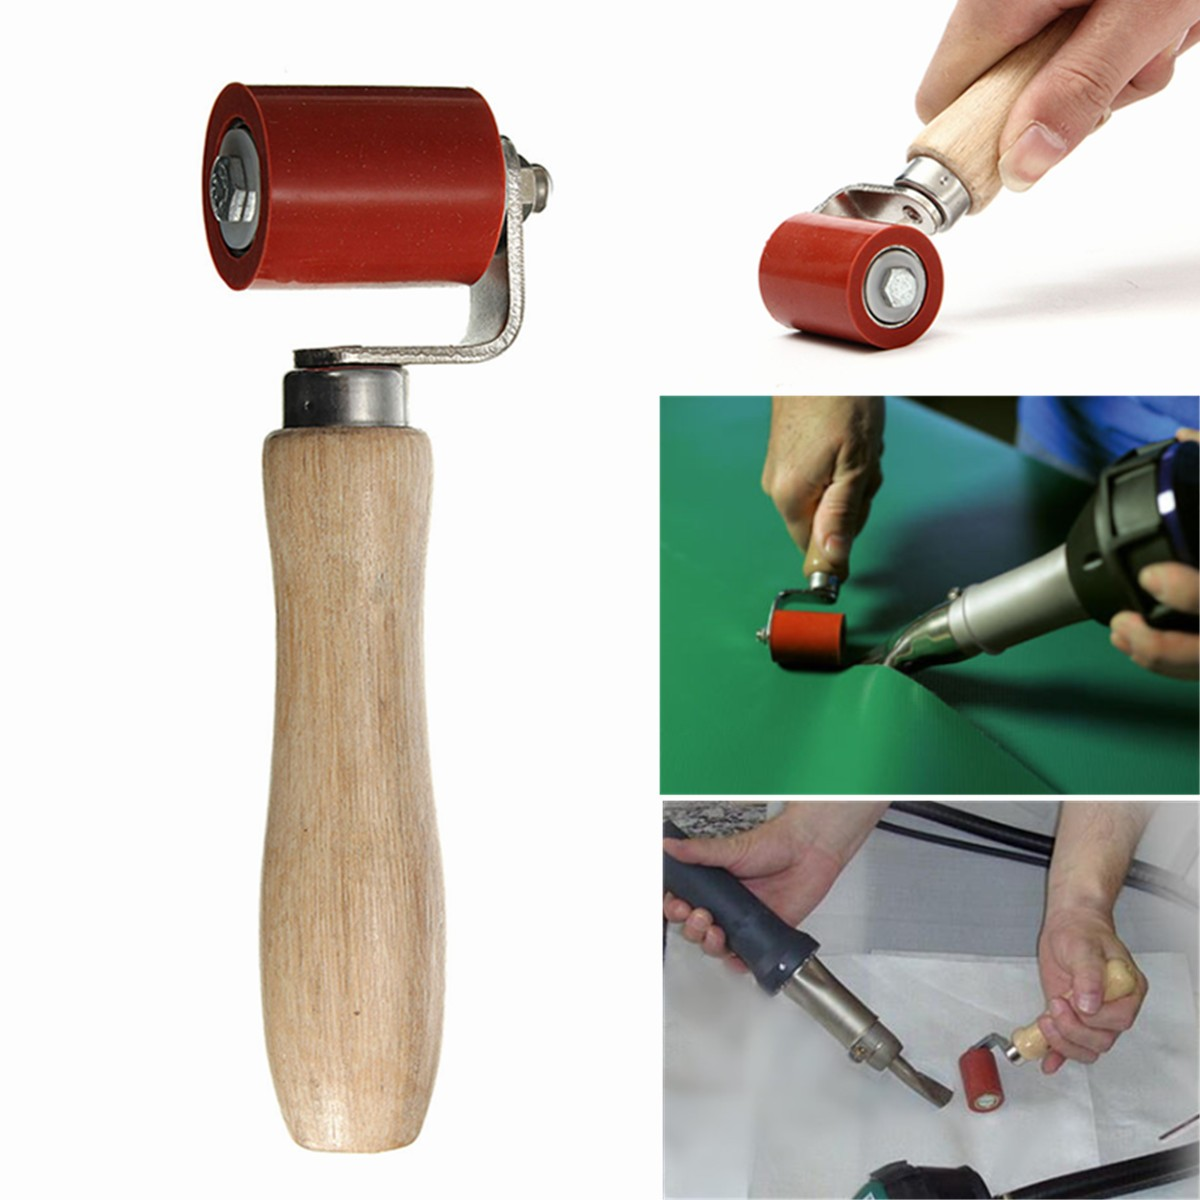 New Arrival Silicone Ball Bearing Pressure Seam Rollers Silica gel pressure roller for Hot Air Plastic weldingunNew Arrival Silicone Ball Bearing Pressure Seam Rollers Silica gel pressure roller for Hot Air Plastic weldingun